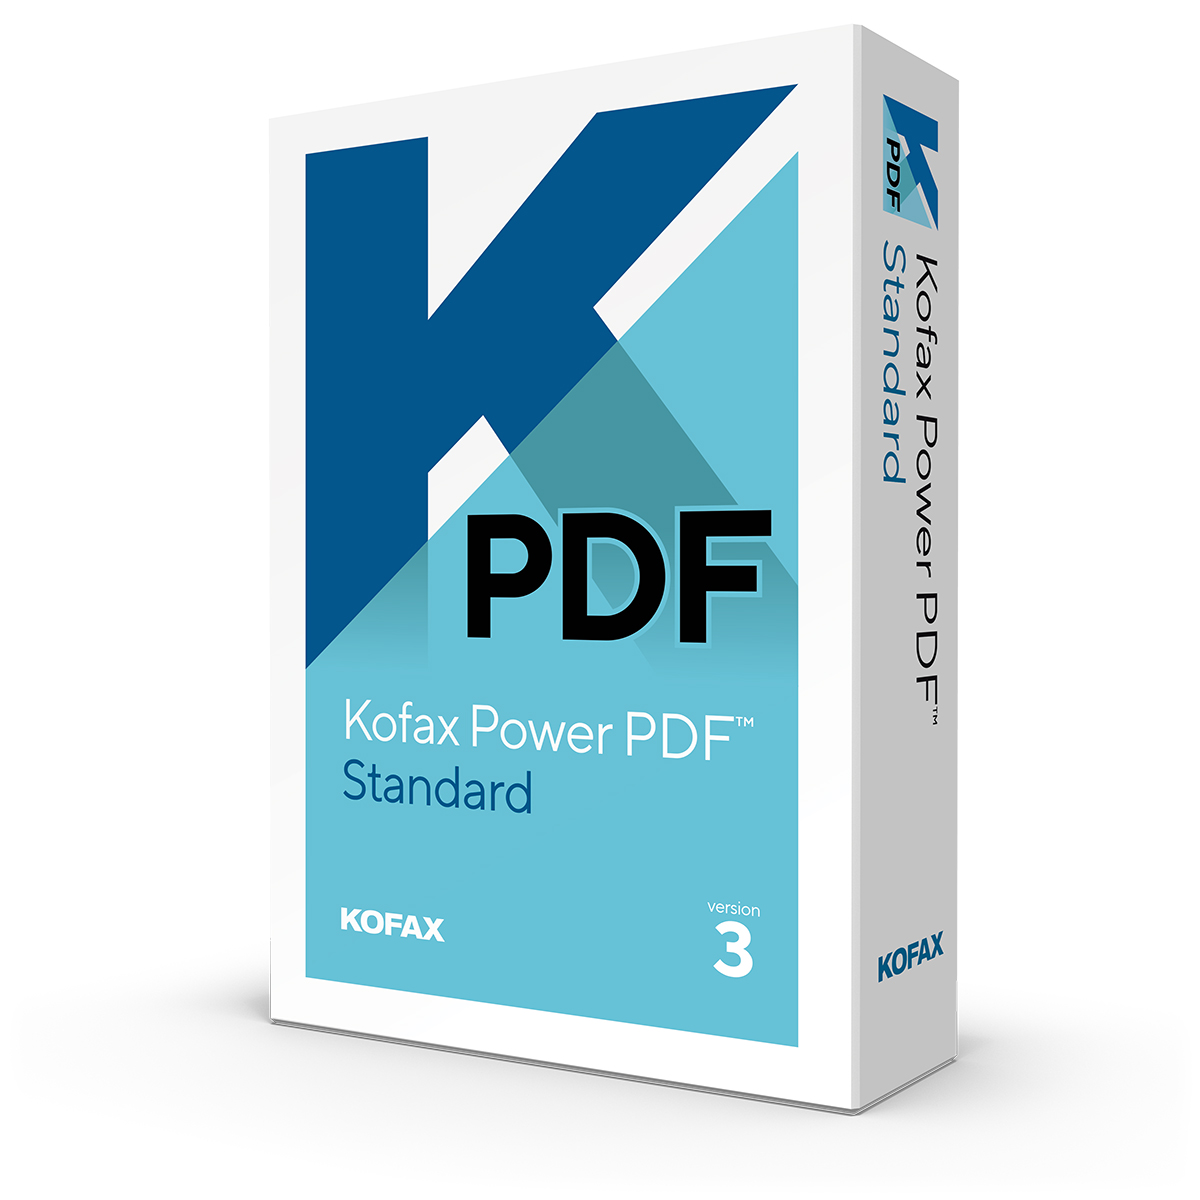 Kofax Power PDF Standard v3 International English Retail